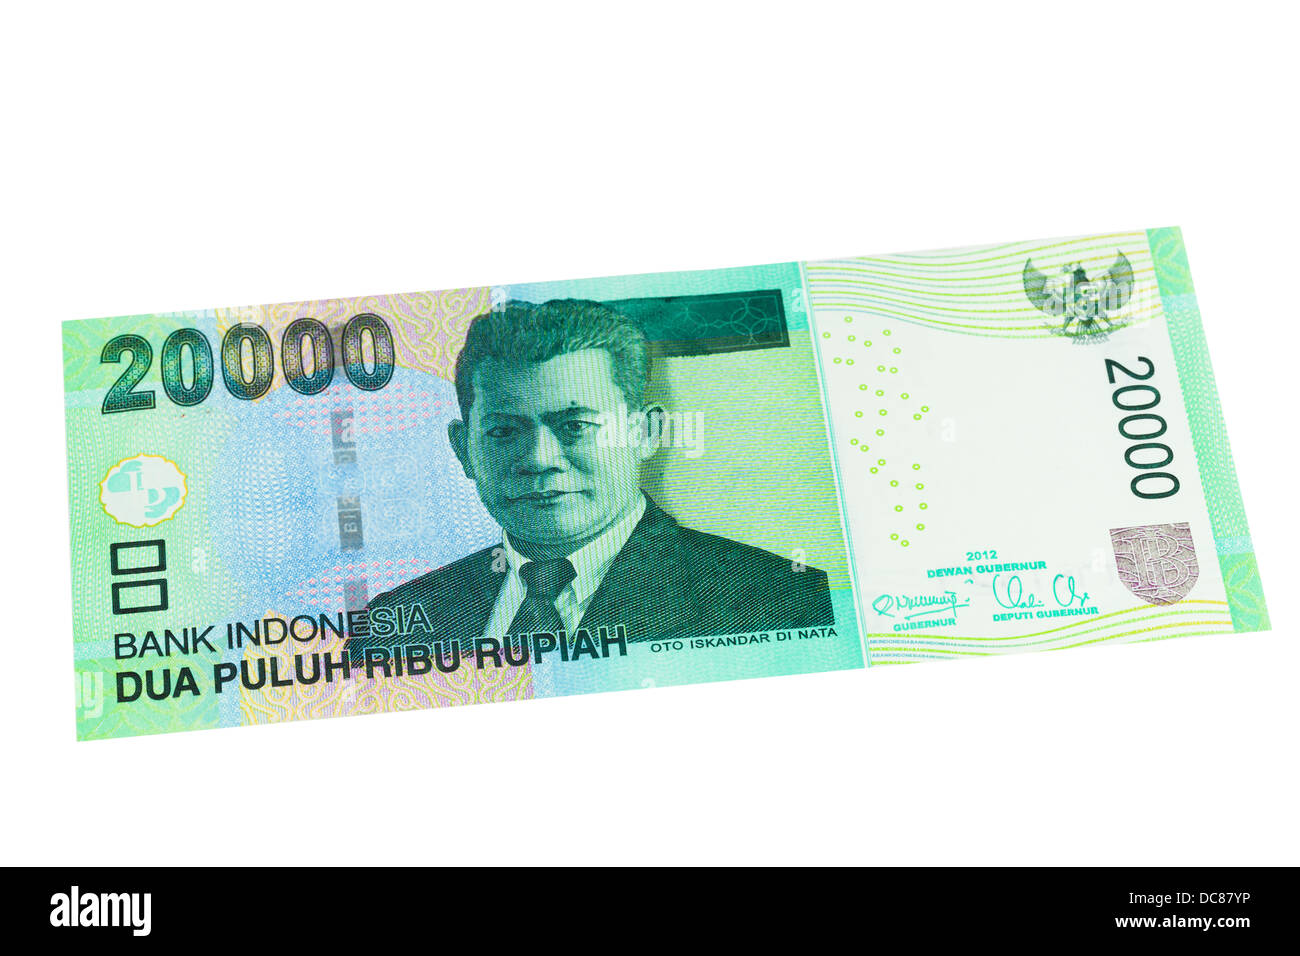 Indonesian twenty thousand rupiah note on a white background - Stock Image